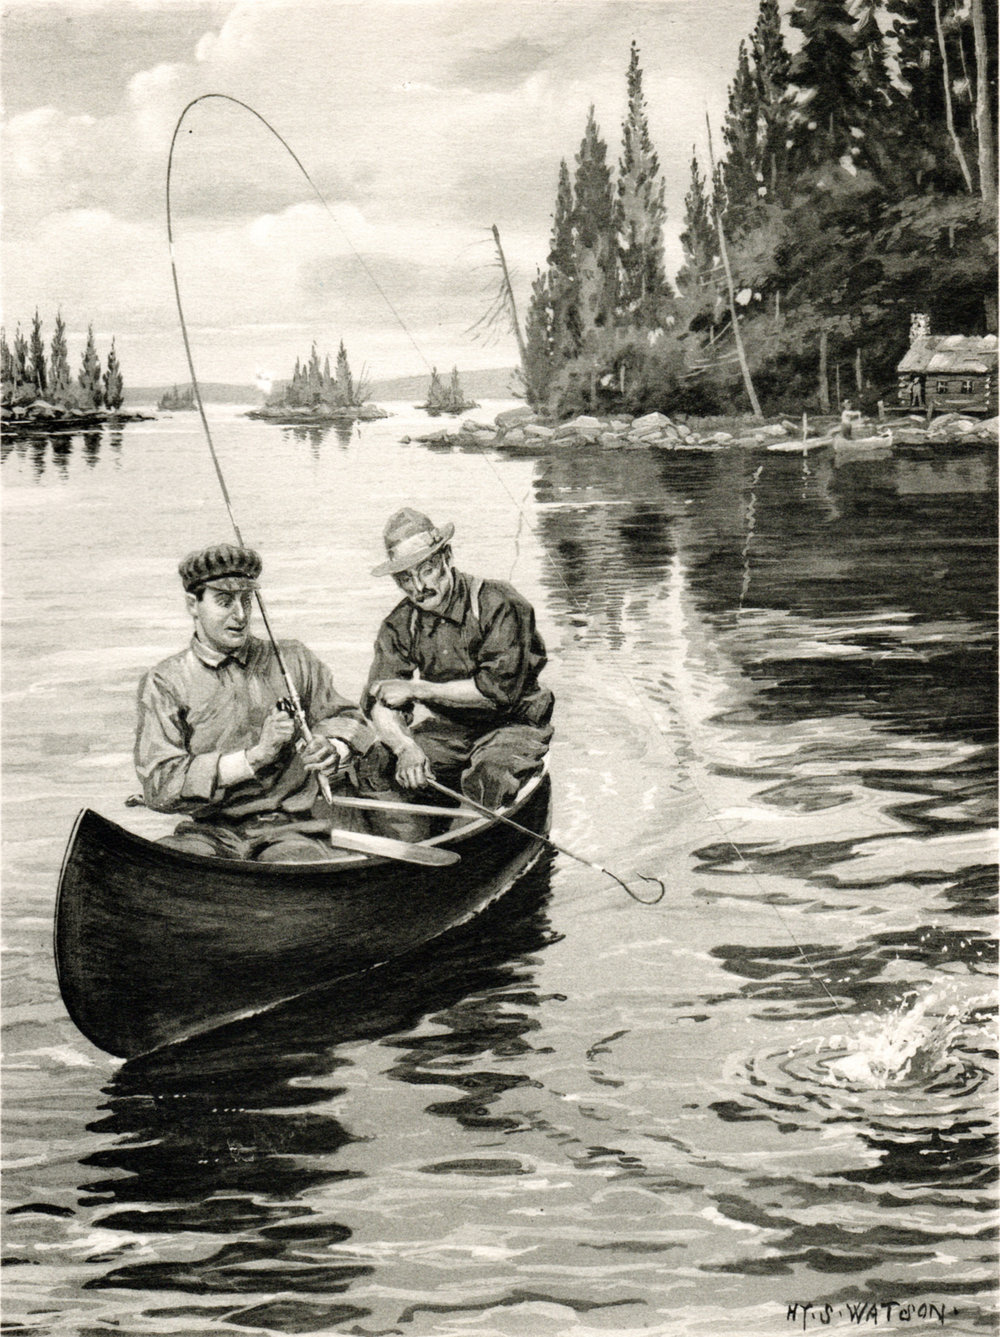 Watson, Hy S. / Fishing & Hunting scenes (1904-07)http://www.darvillsrareprints.com/Denton%20Fish%20New%20York%20Forest%20Fish%20and%20Game%20Commission%201904-1907%202.htm